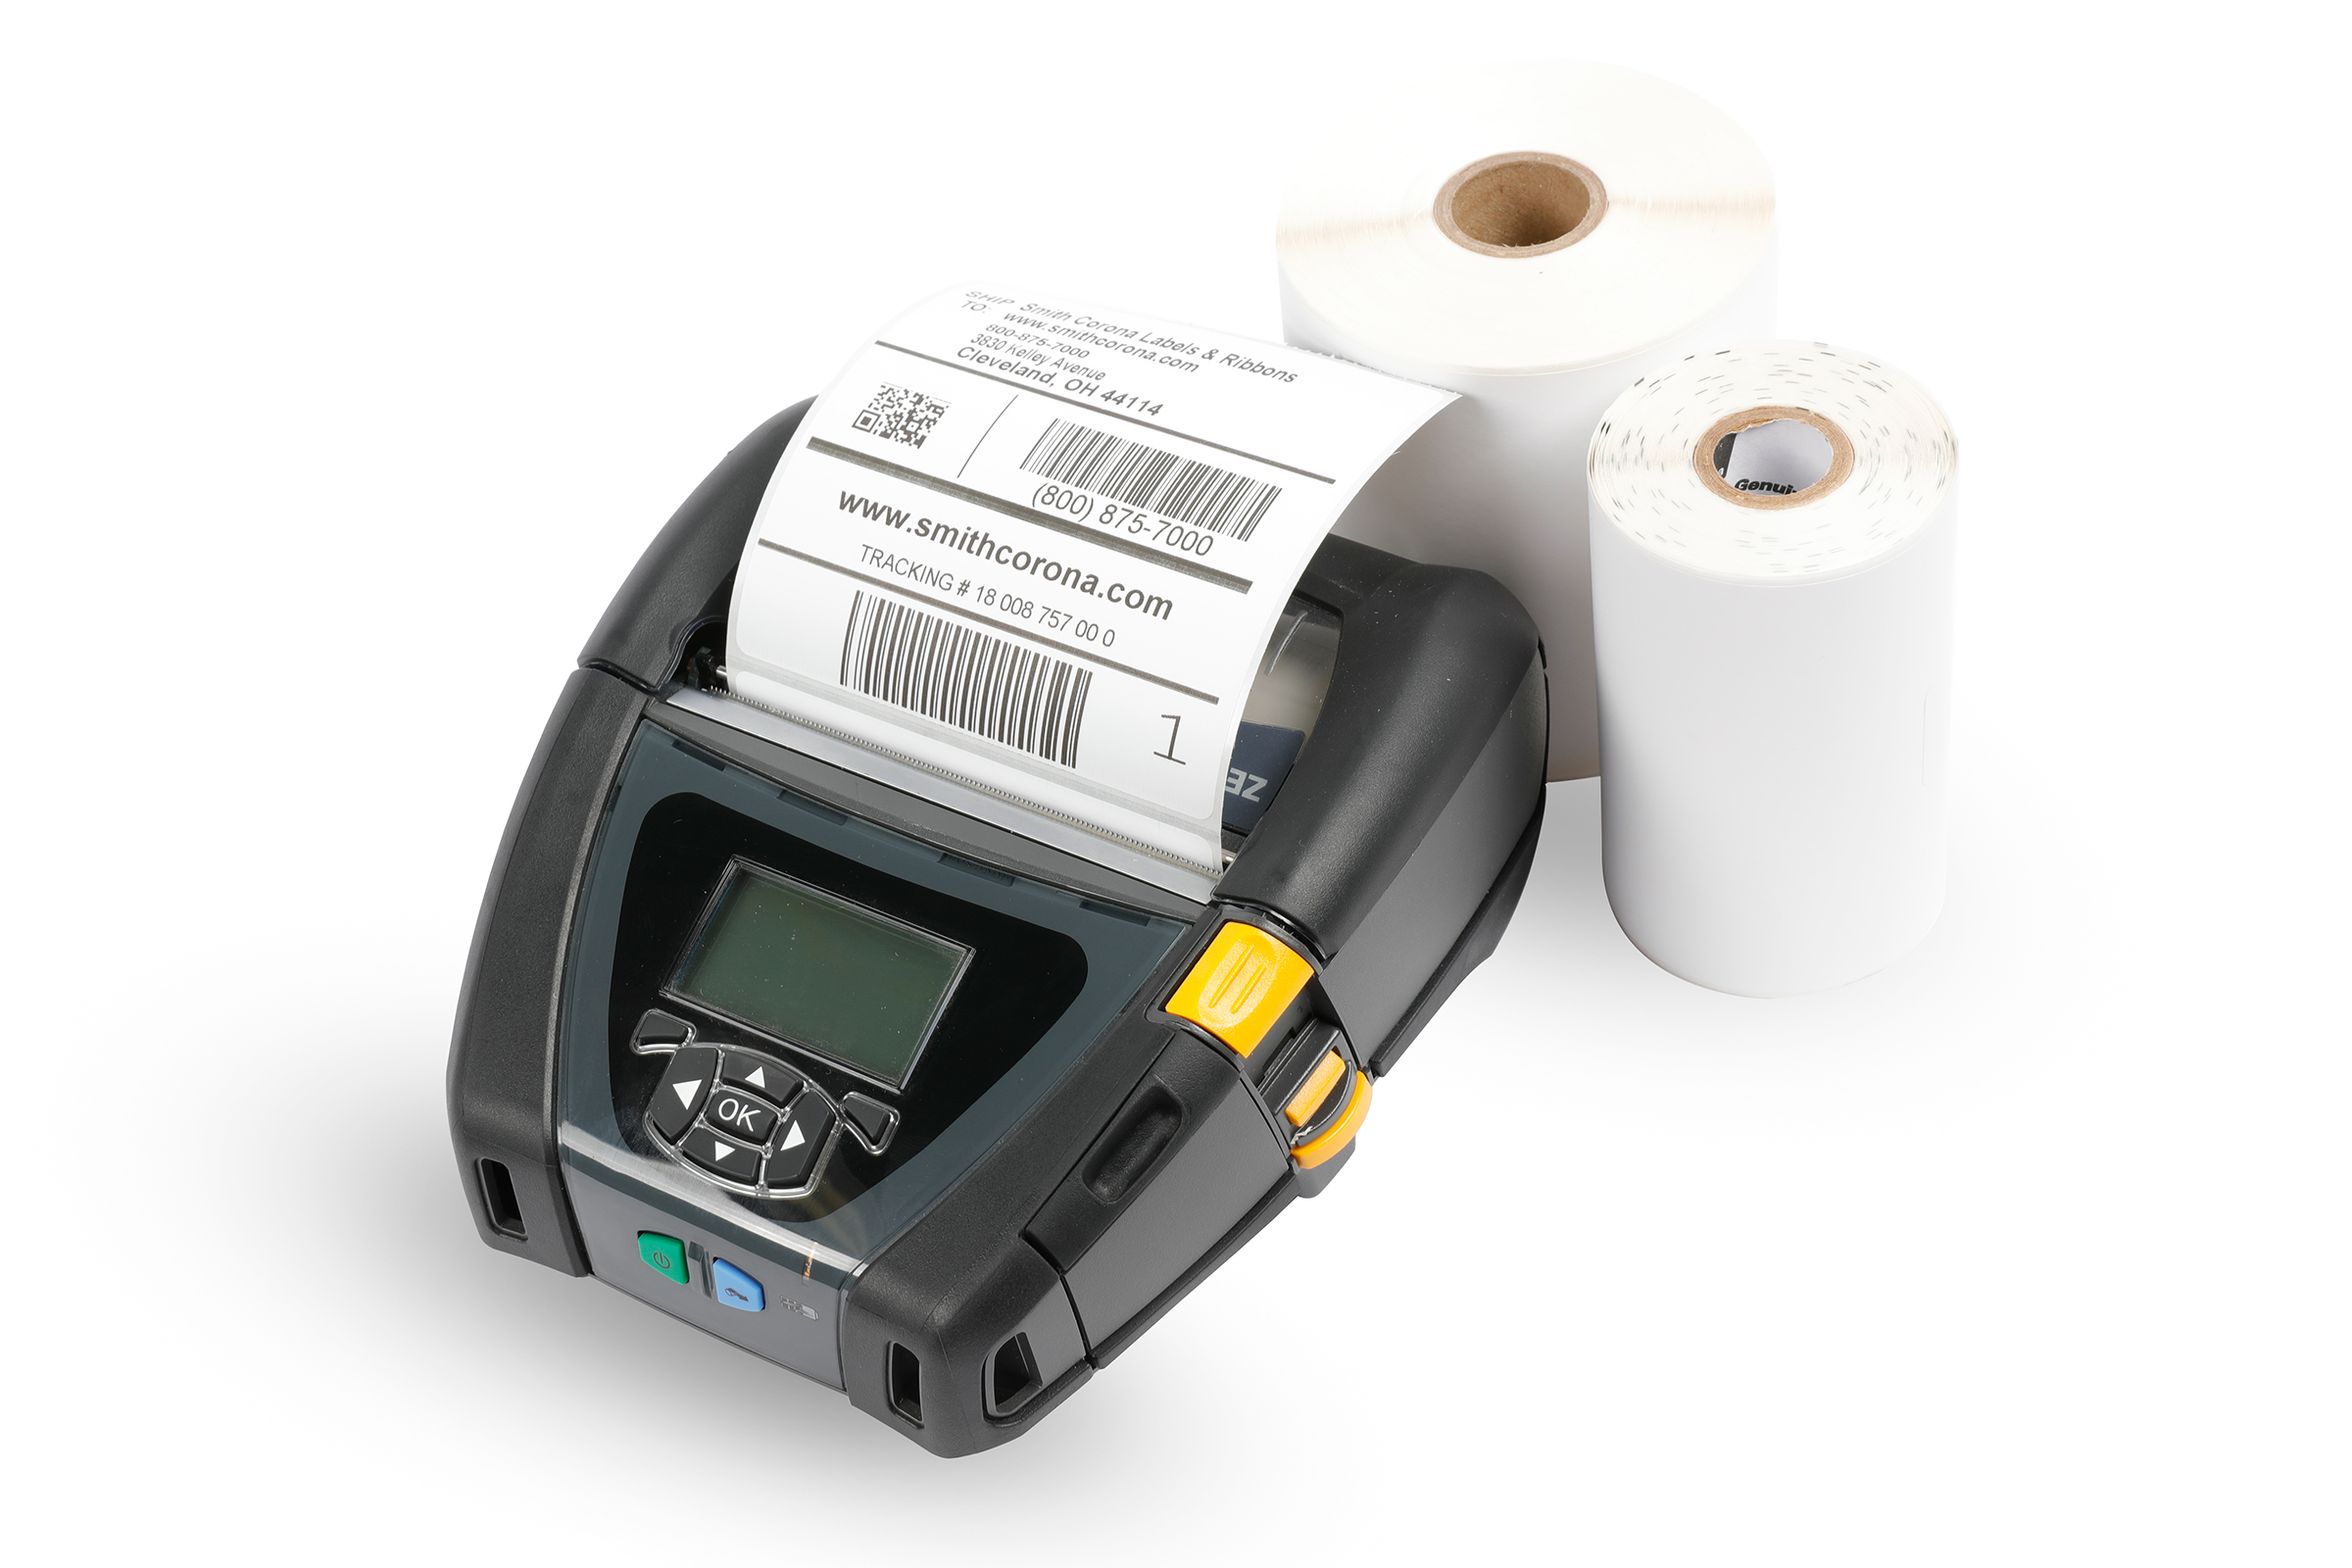 A direct thermal mobile printer with direct thermal labels